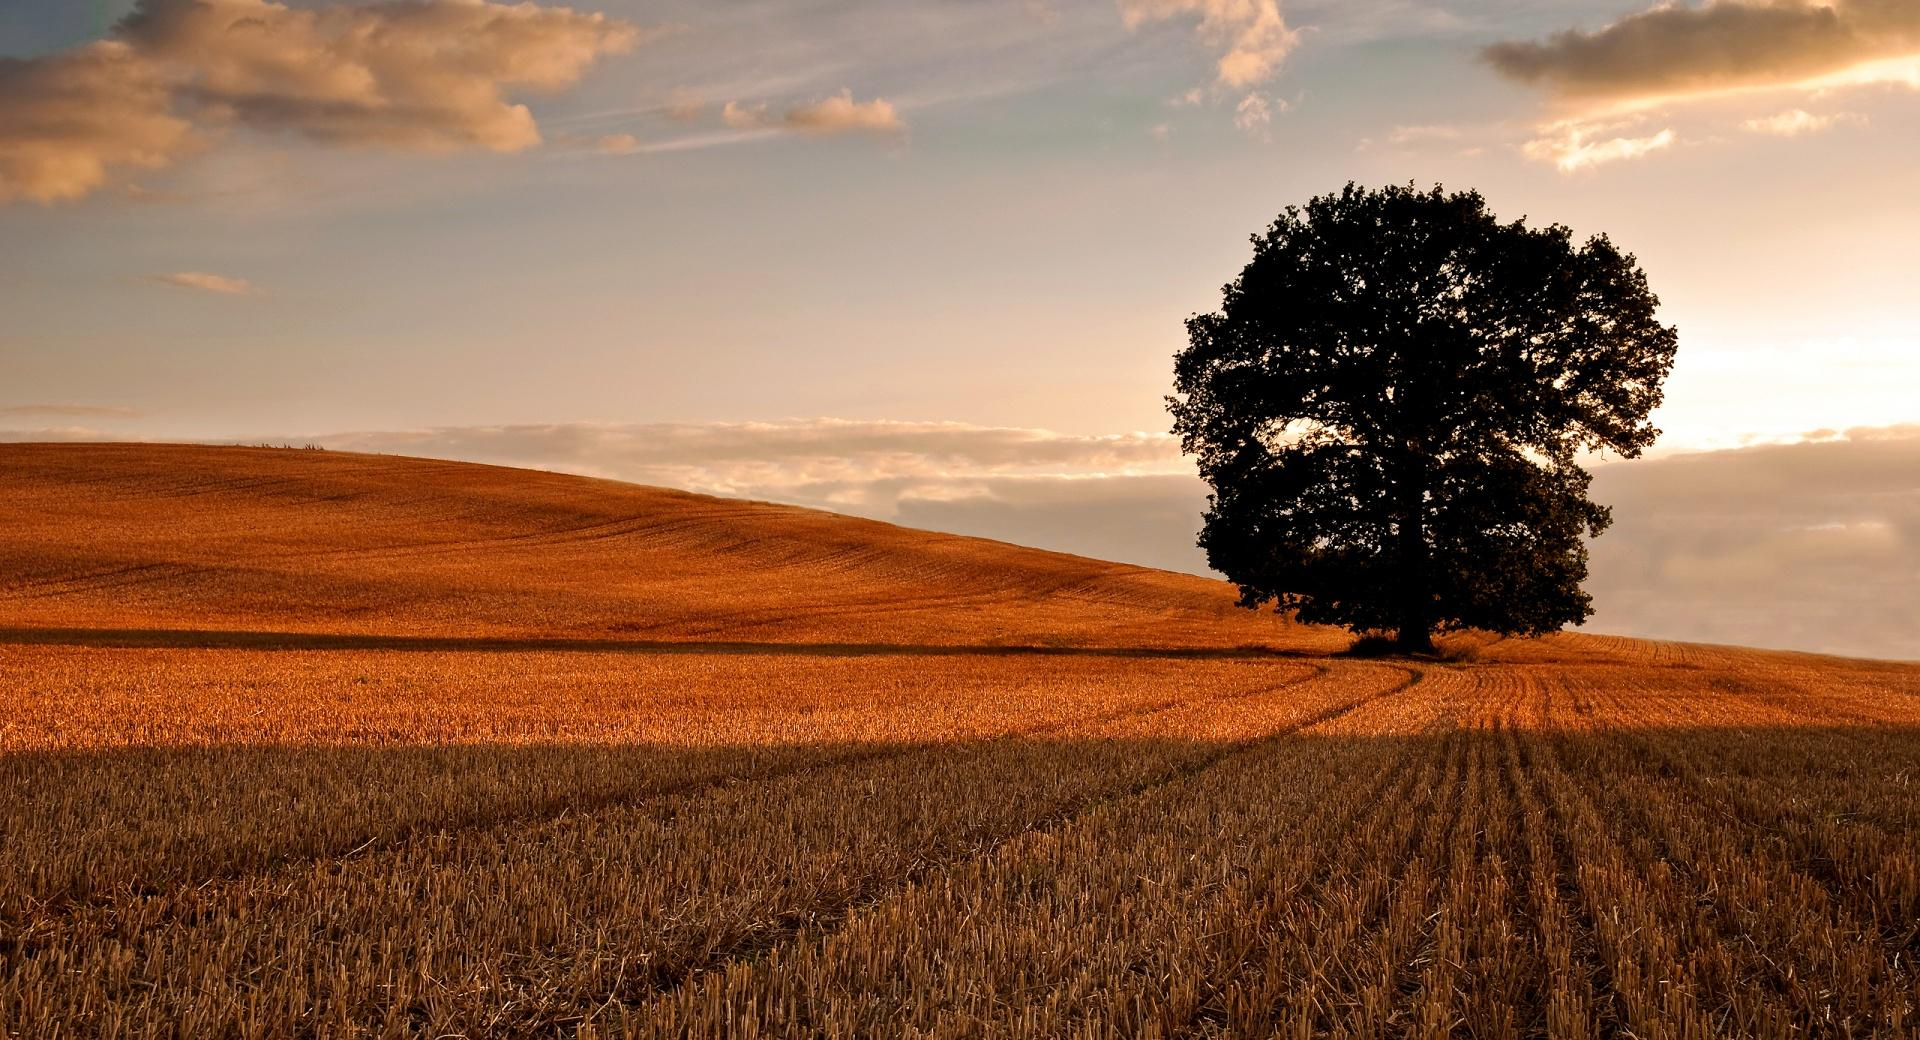 Lone Tree In Field, Autumn wallpapers HD quality